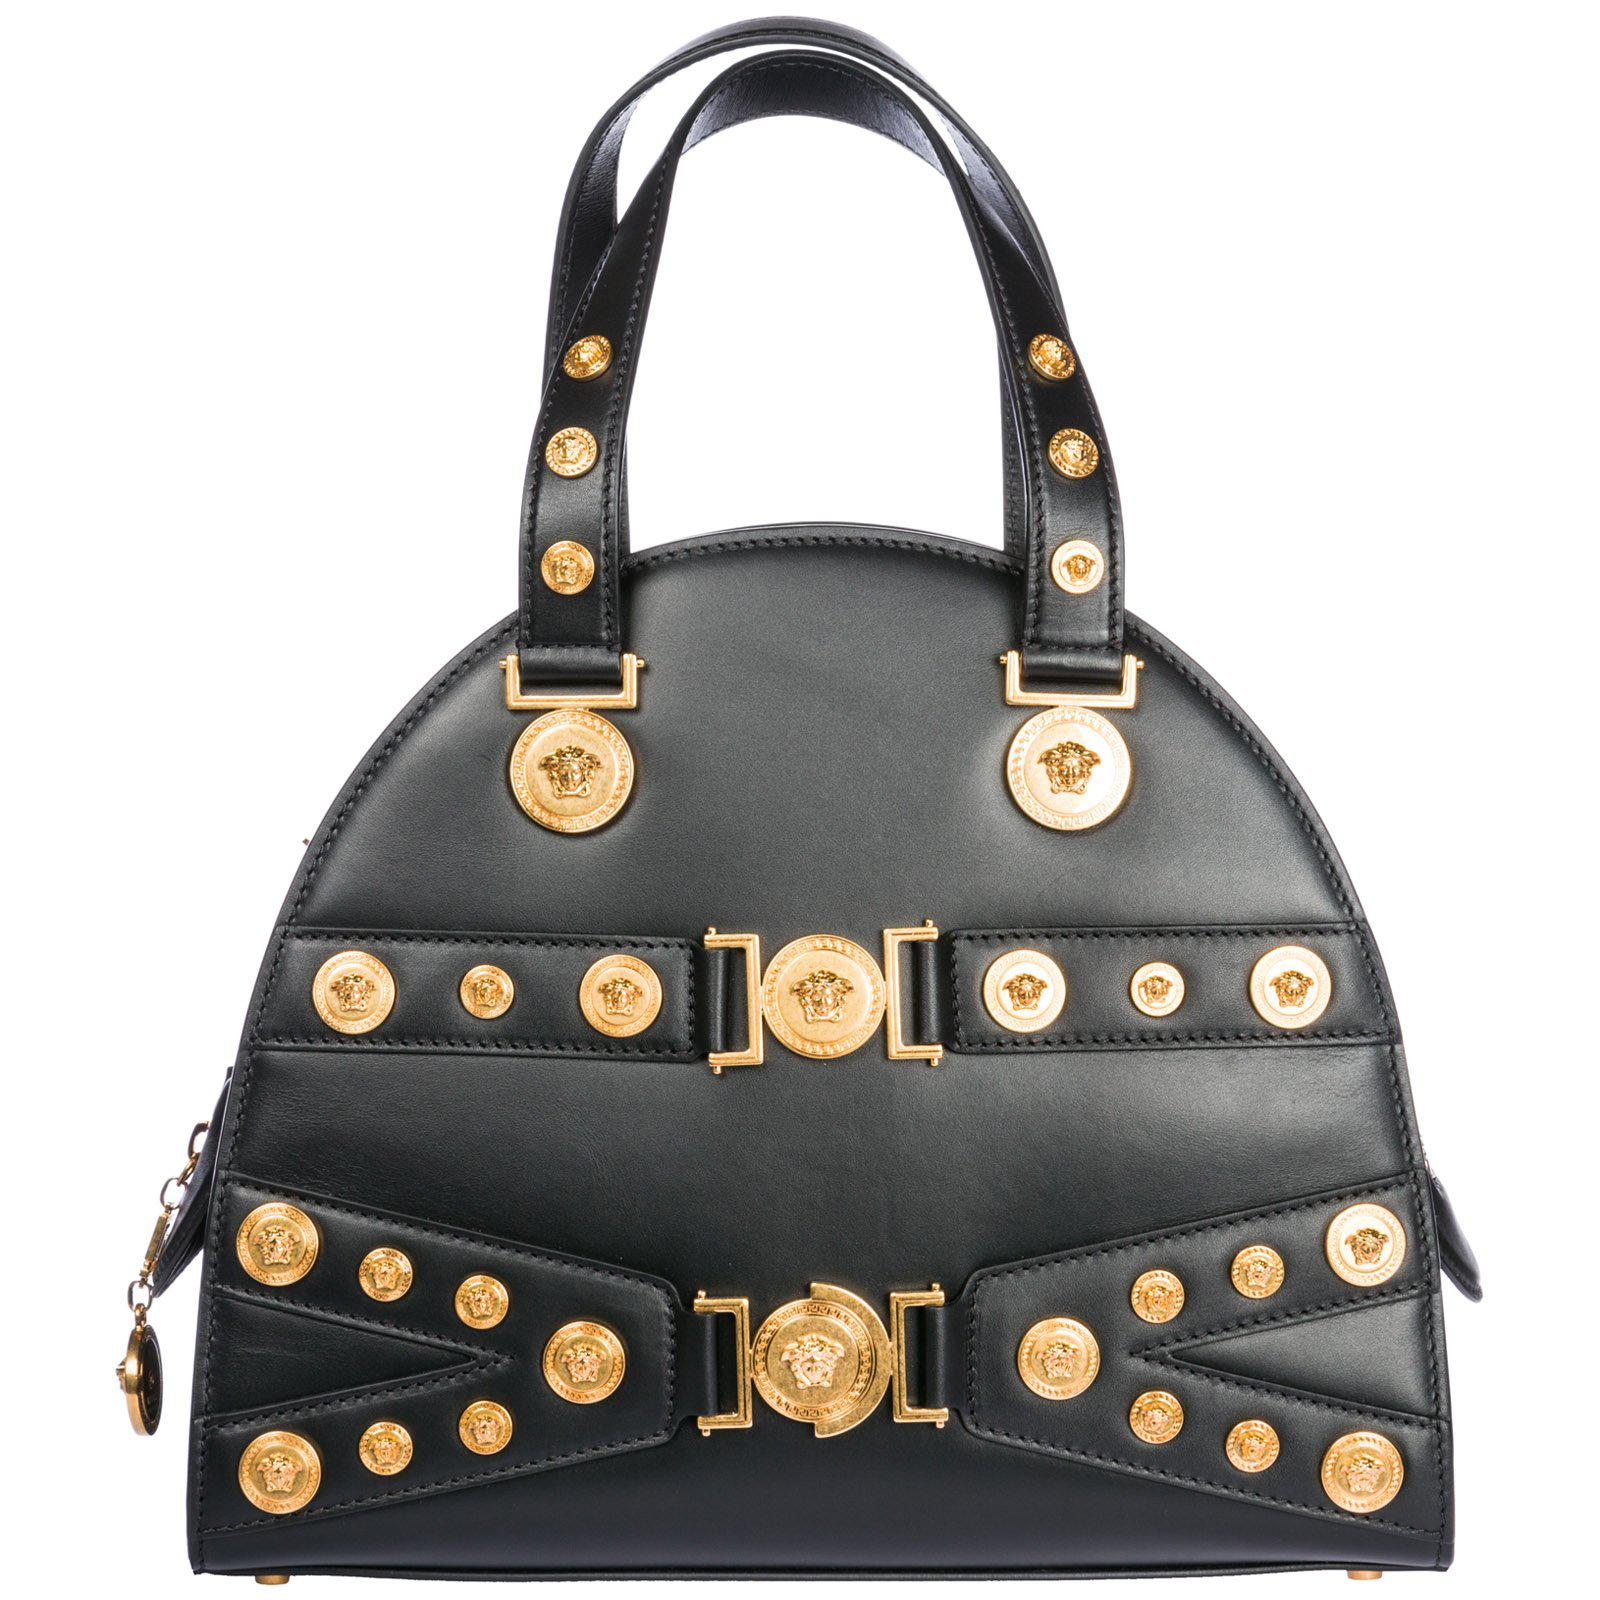 4c8dc1bab89c Versace Medusa Detailed Tote Bag in Black - Lyst